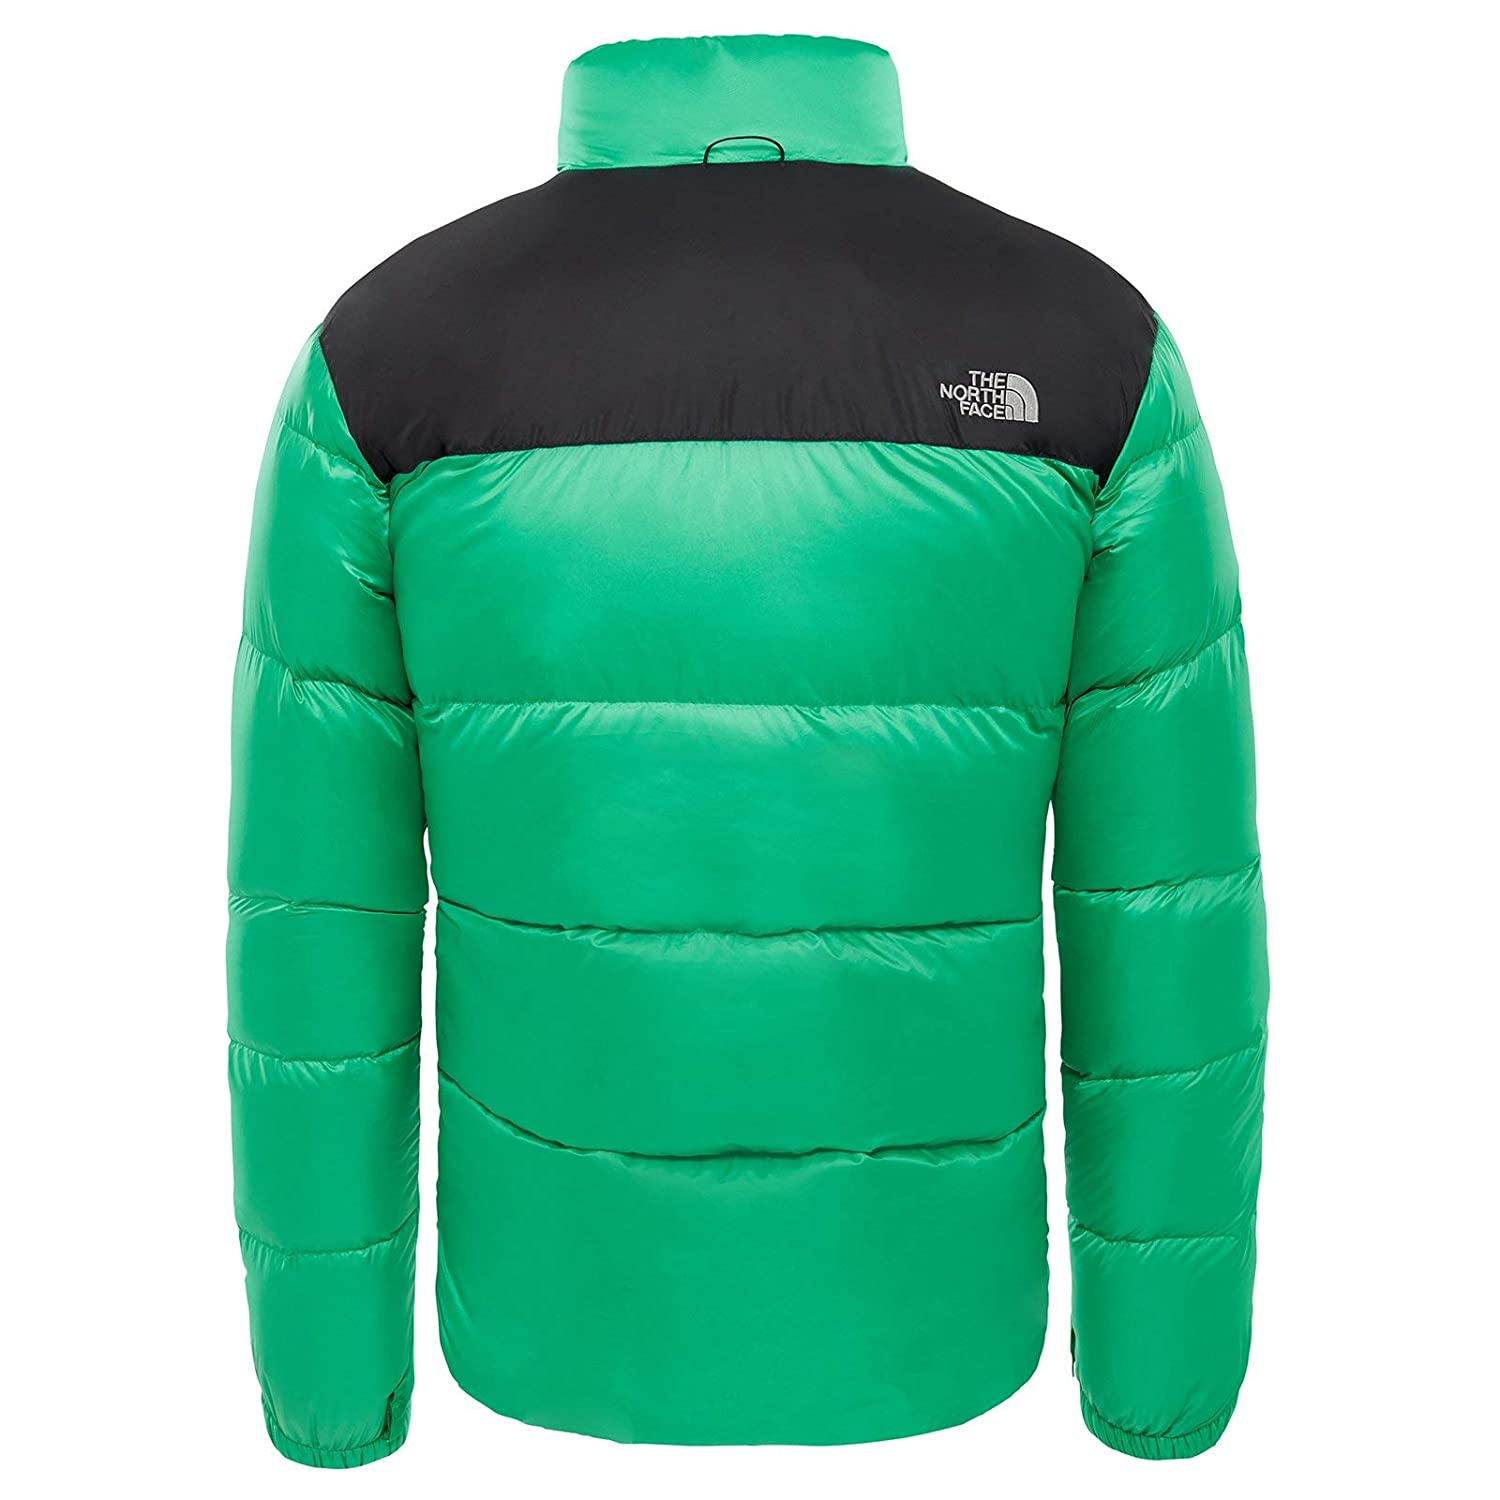 0e3619b54 THE NORTH FACE Men's Nuptse Iii Jacket